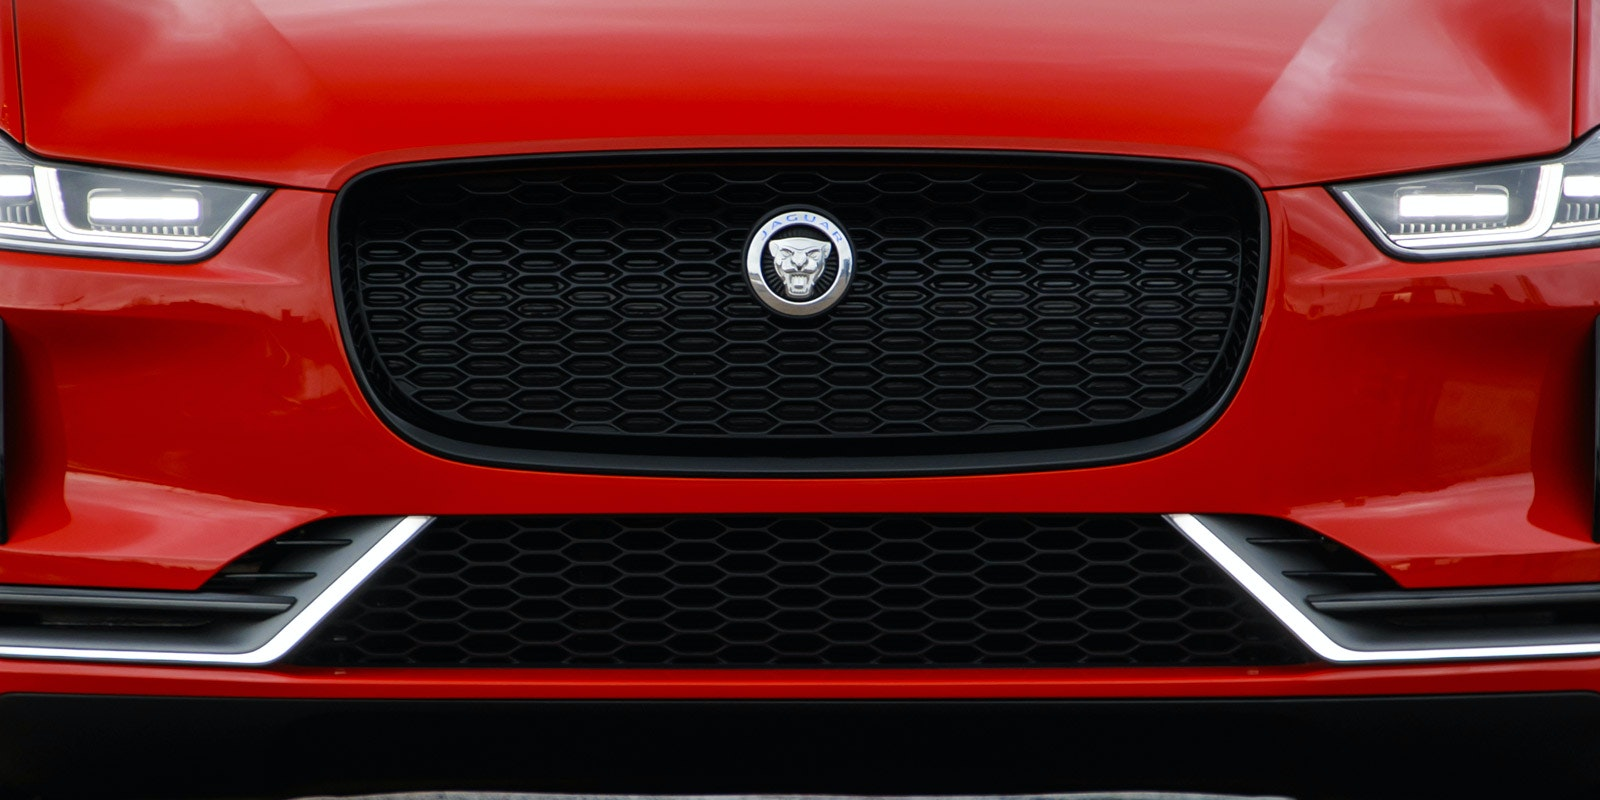 Jaguar i pace red front parked grille close up lead 1.jpg?ixlib=rb 1.1